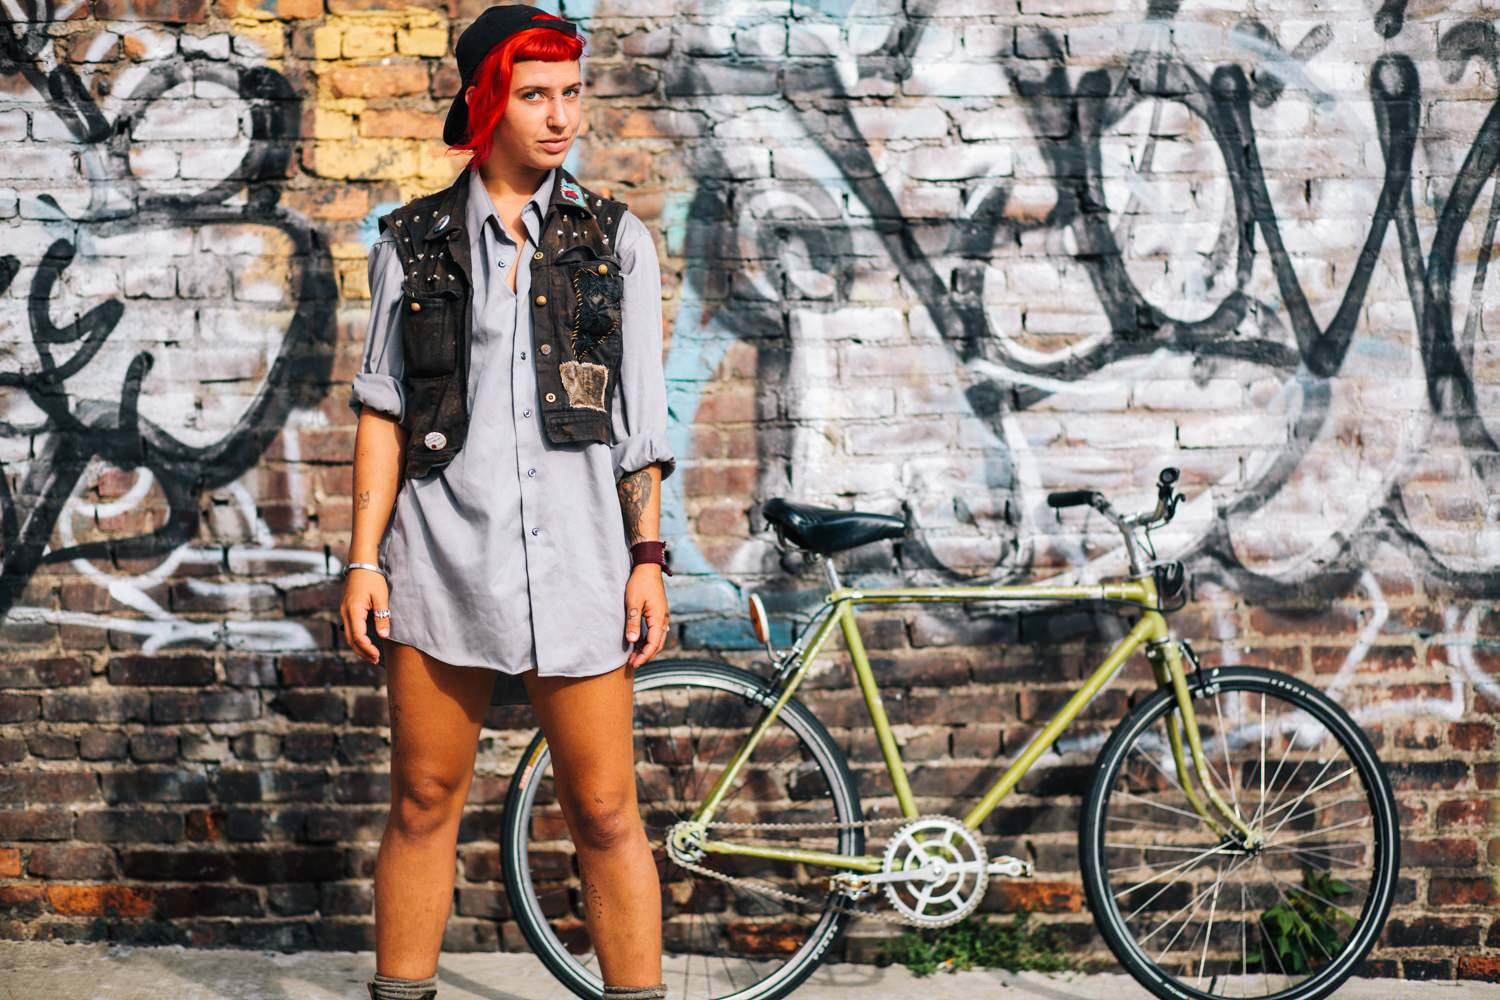 Red haired woman with bike